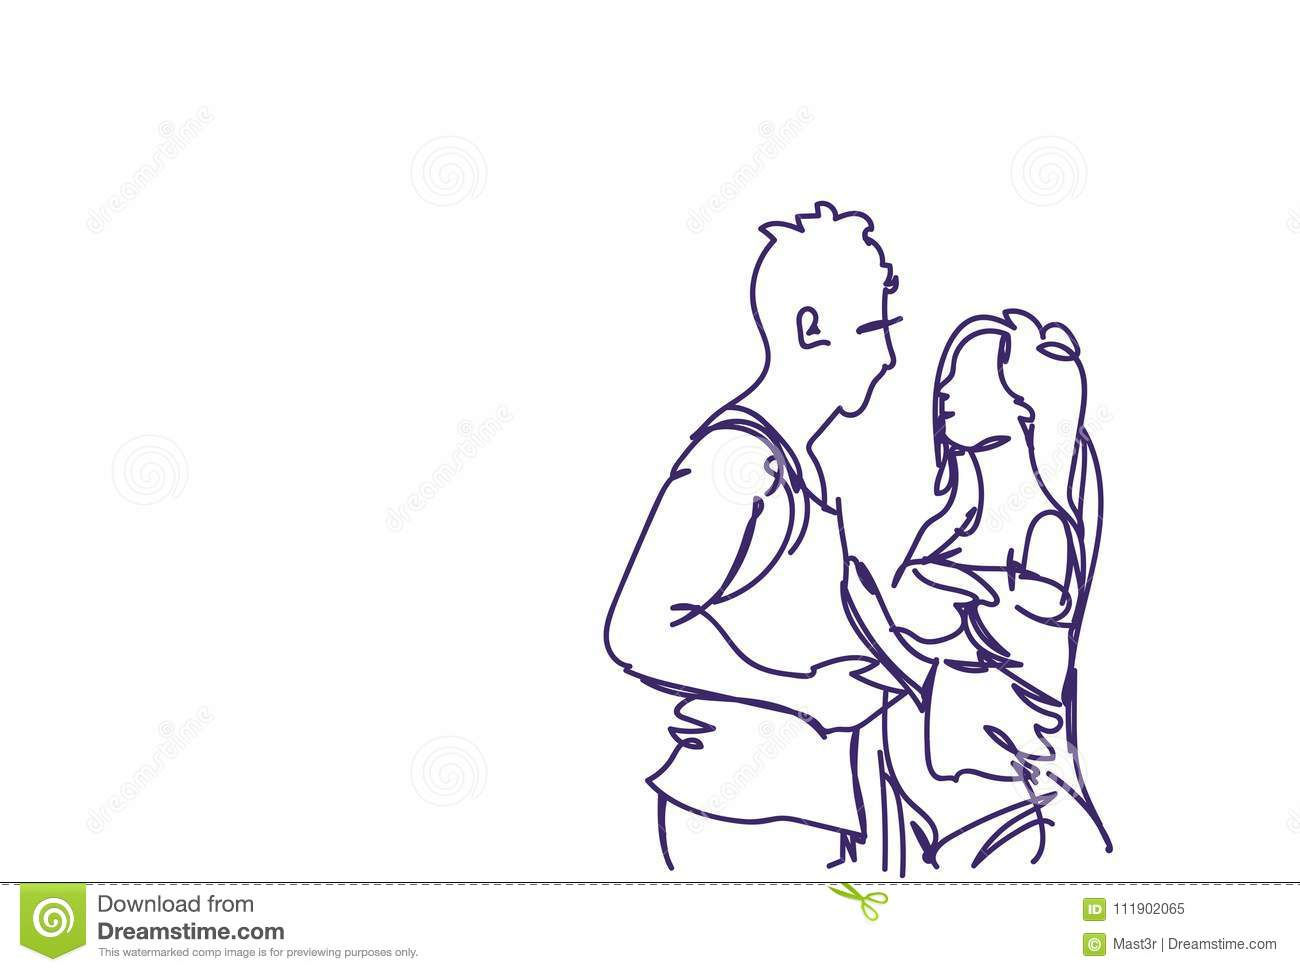 Sketch couple embracing doodle man and woman hug over white background